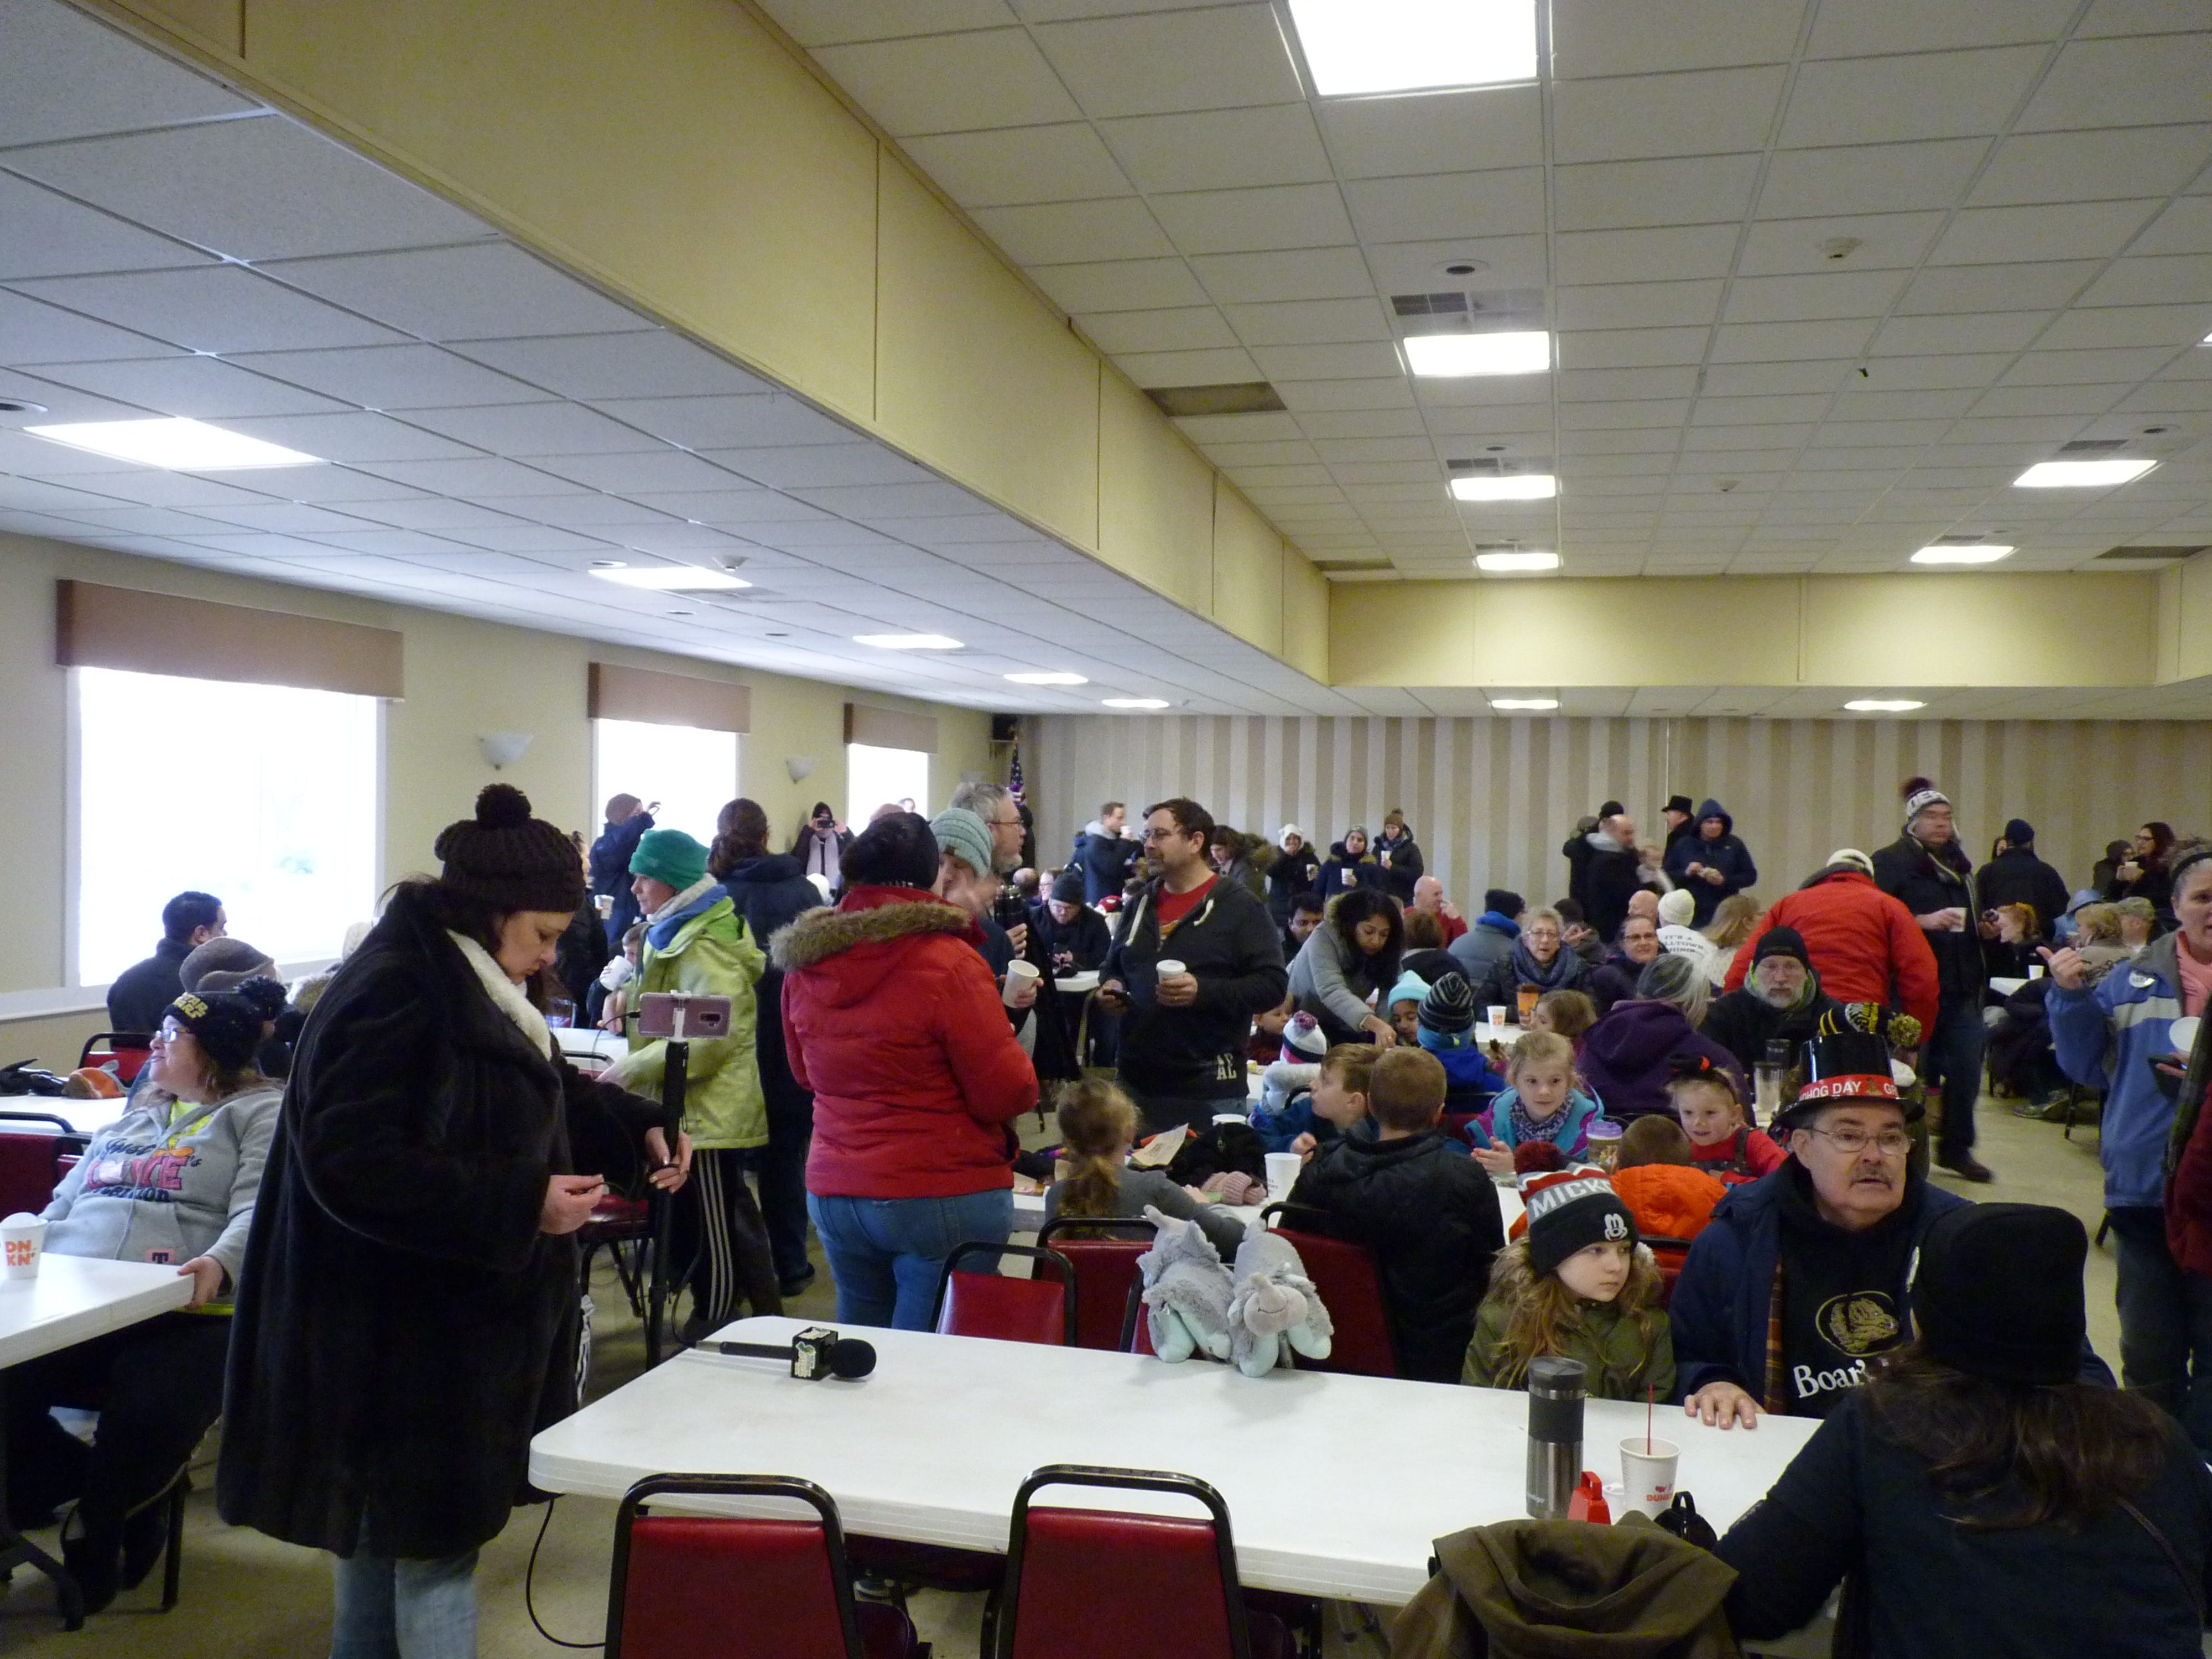 Attendees enjoyed coffee and donuts at the American Legion Post 25 in Milltown after the Groundhog Day prediction.